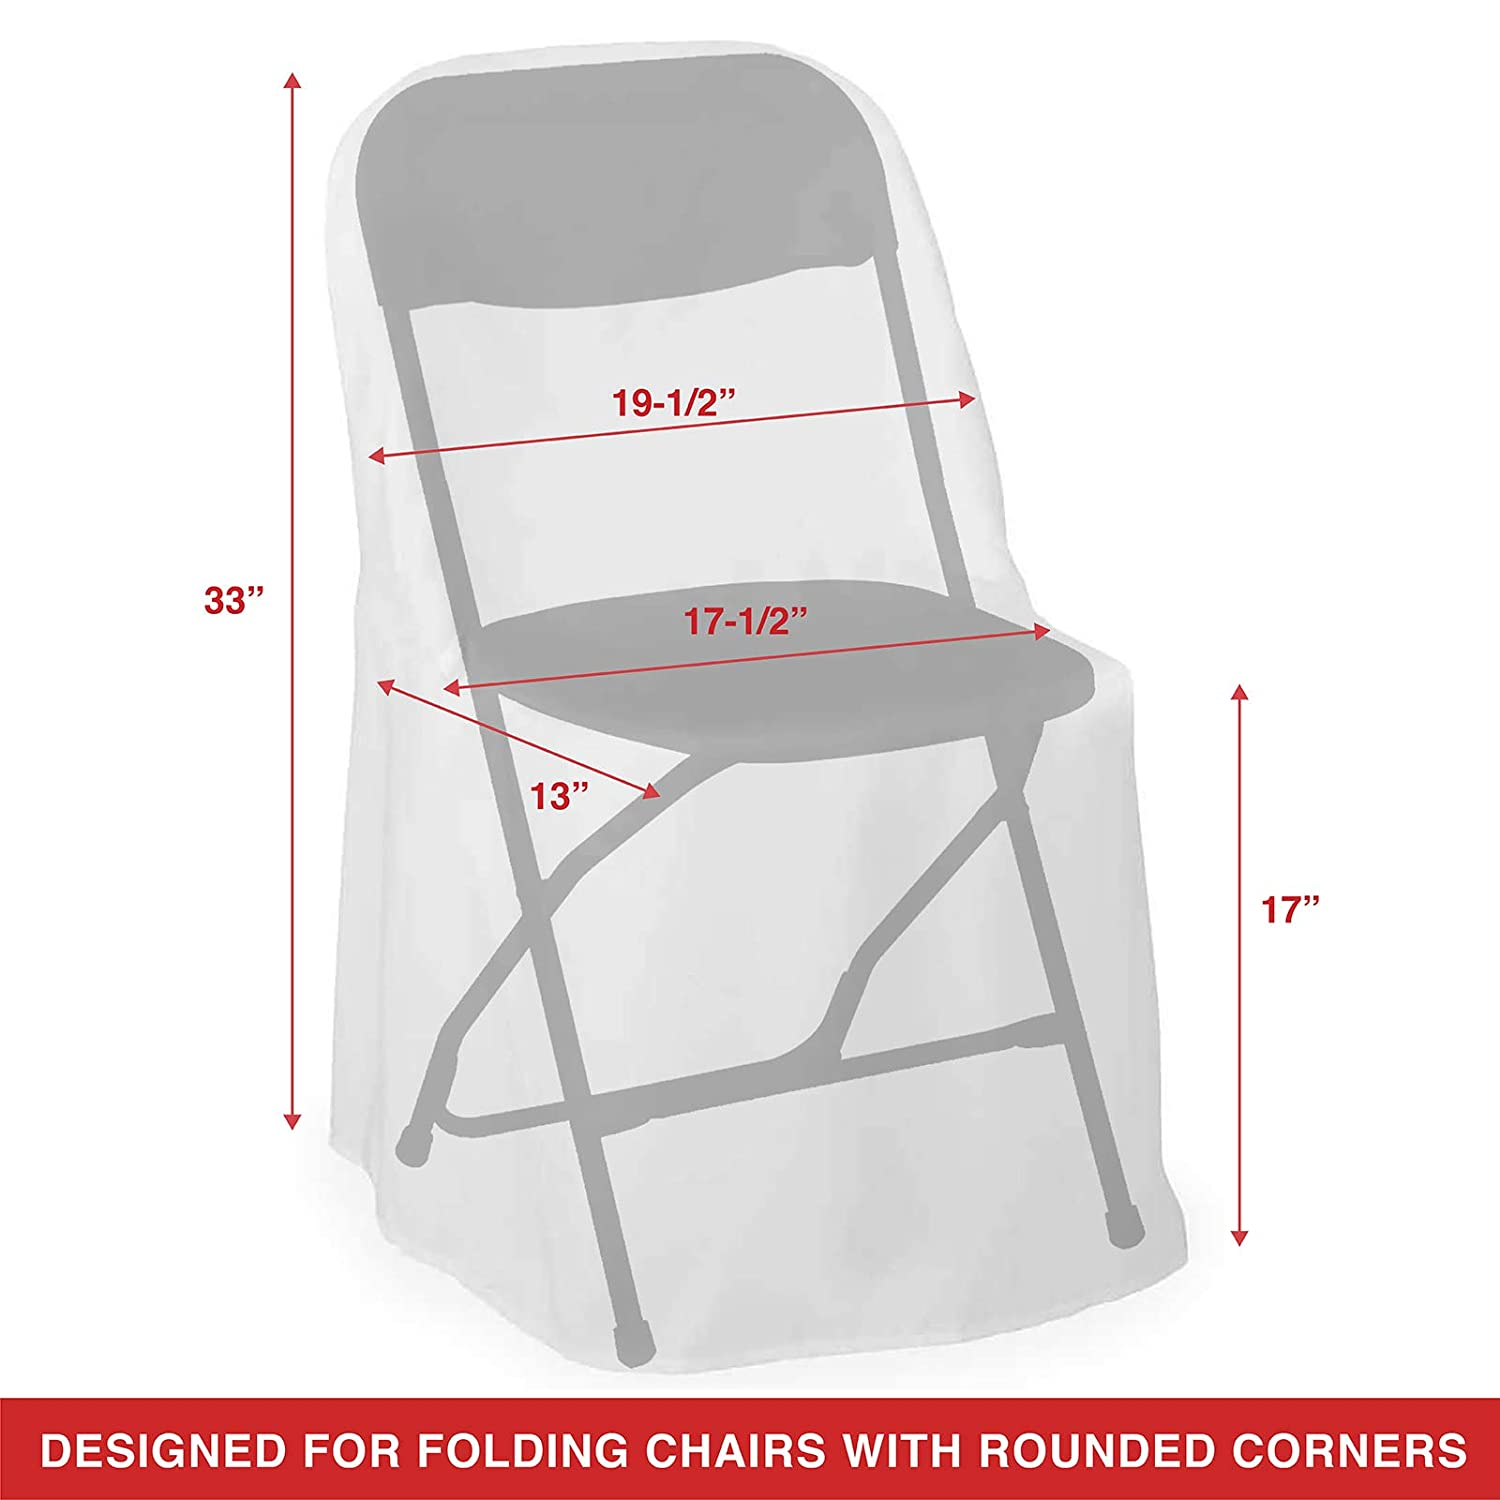 Lanns Linens - 10 Elegant Wedding/Party Folding Chair Covers - Polyester Cloth - White